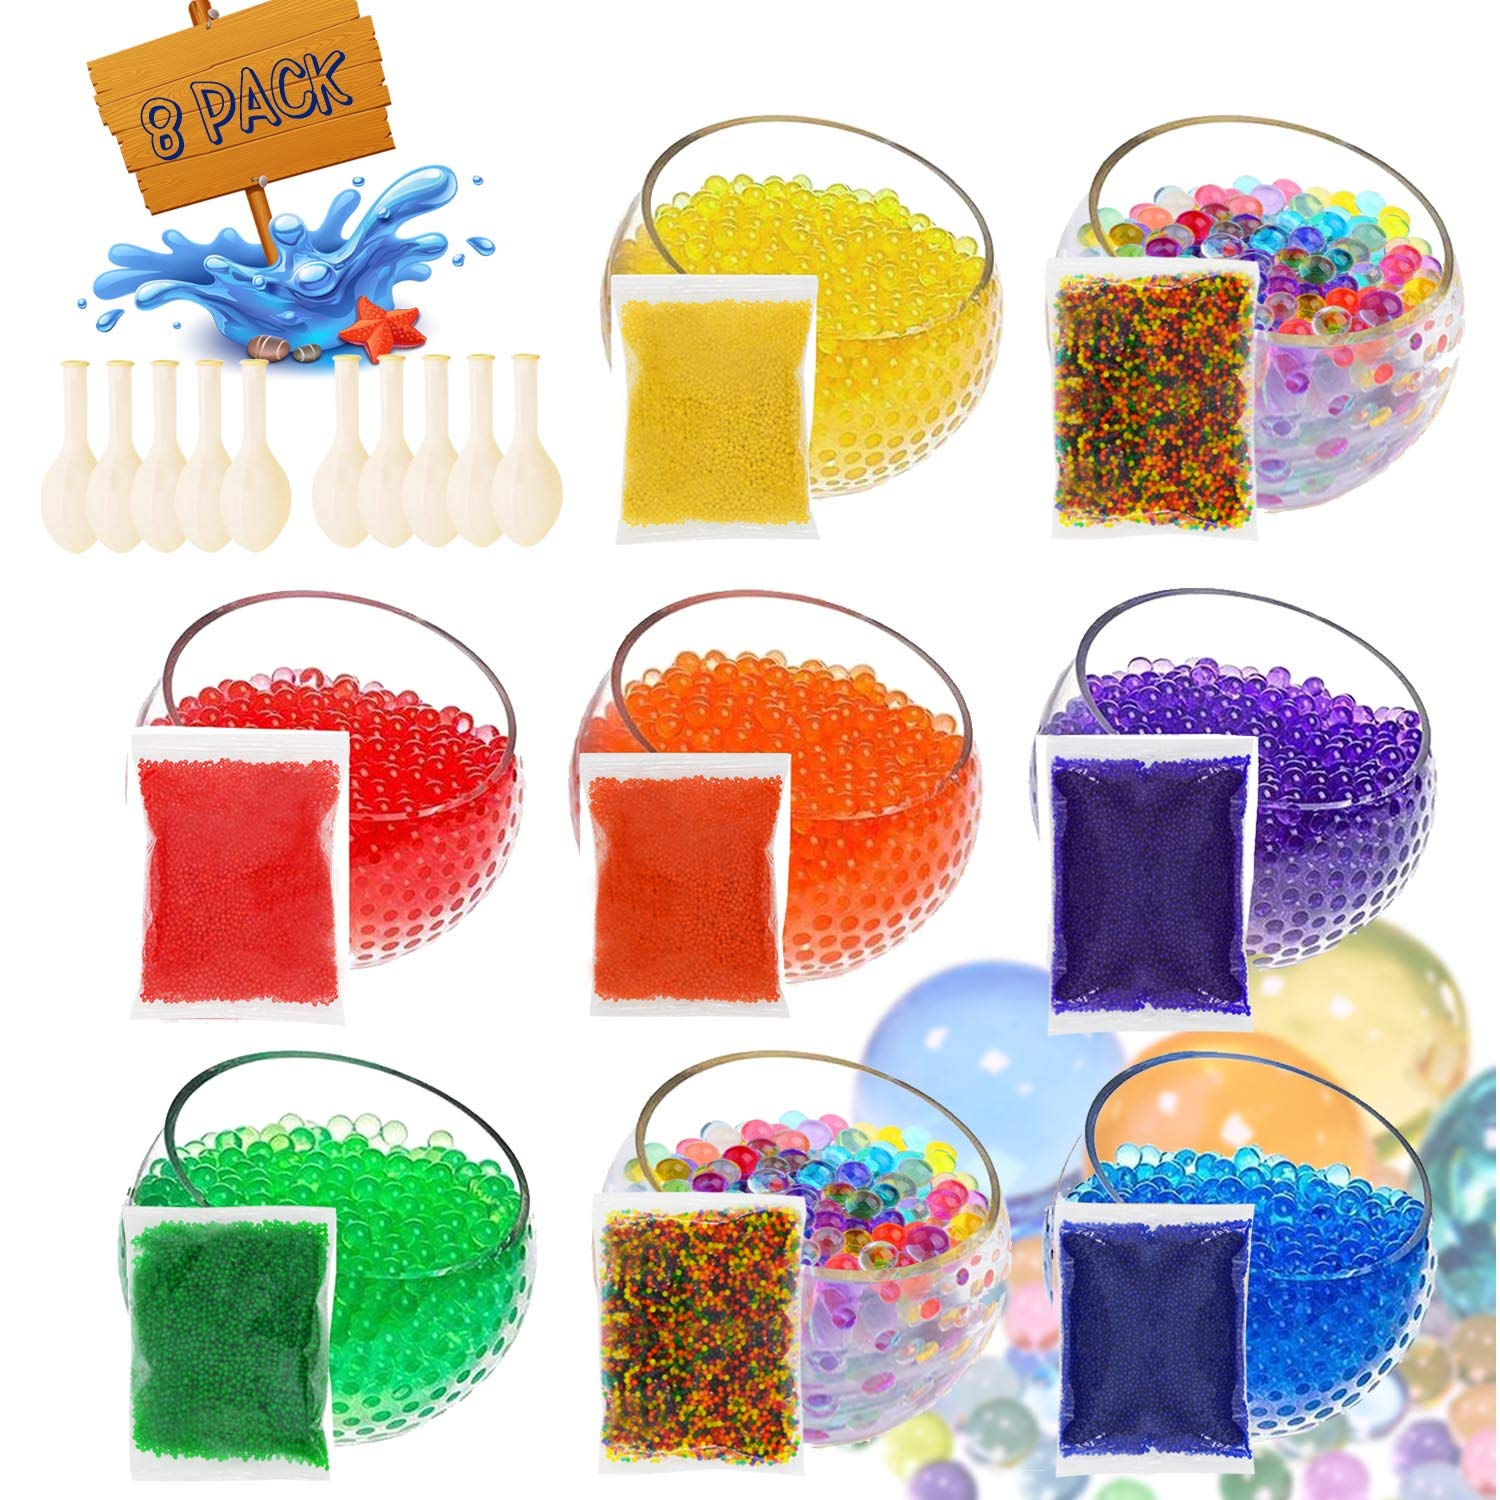 U Goforst Water Beads Pack 80000 Small Beads 50 Giant Beads 10 DIY Stress Balloons Spa Refill Sensory Kids Toys Growing Balls Orbies Ice Jelly Water Gel Bead Plants Vases and Decoration